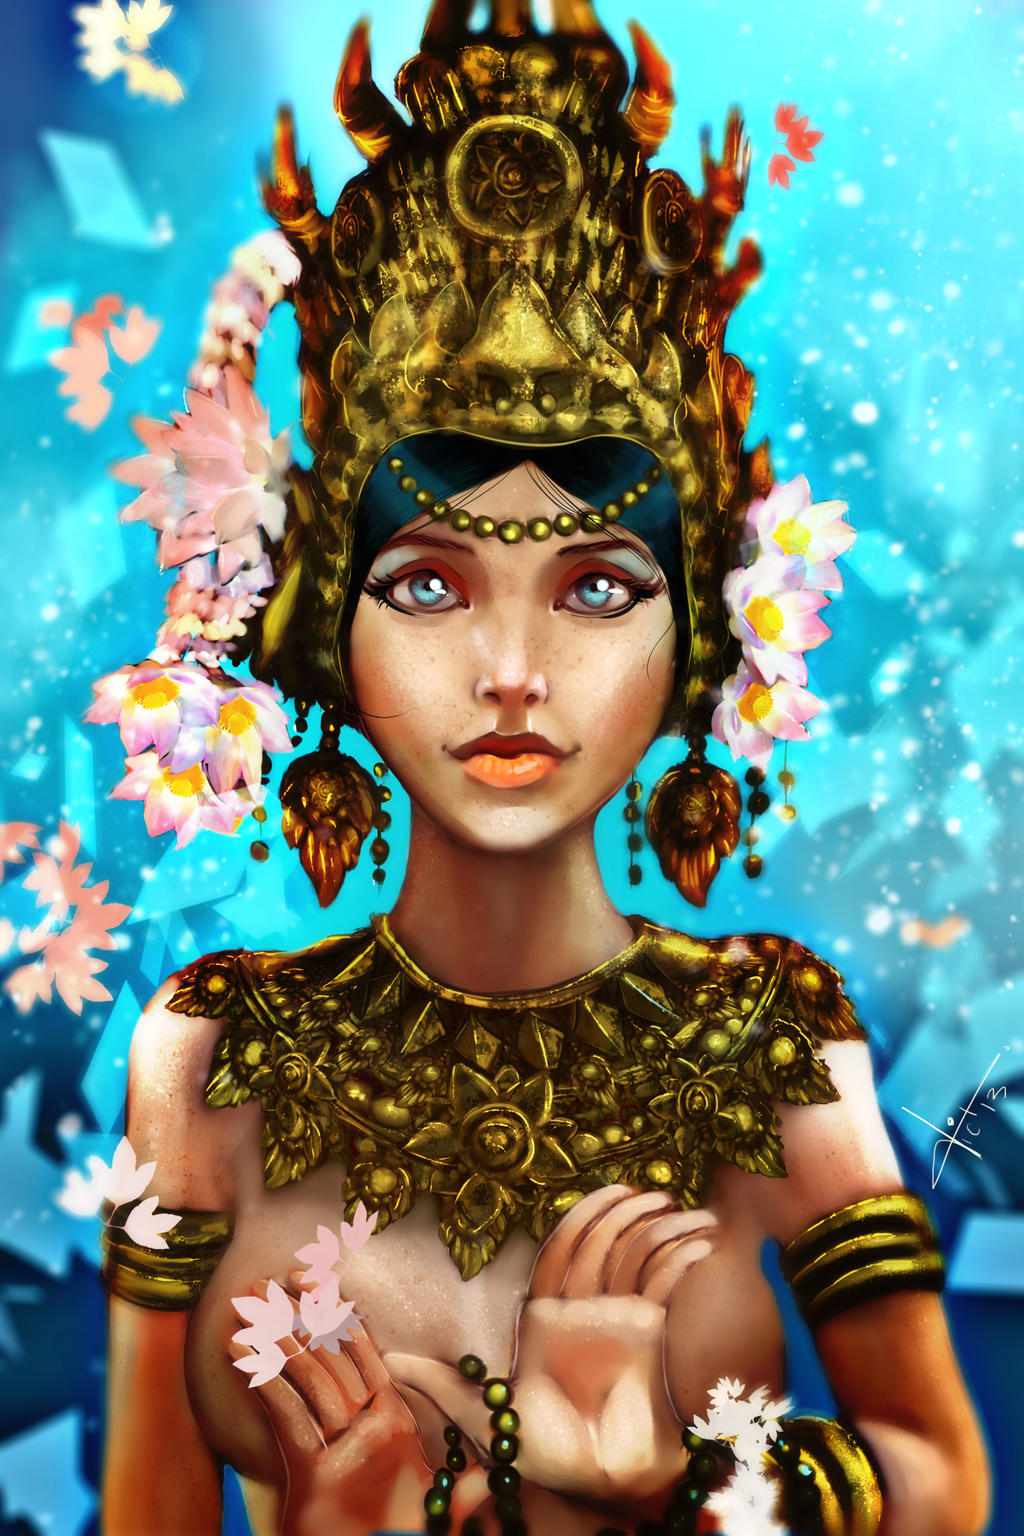 khmer apsara pictures - HD1024×1536